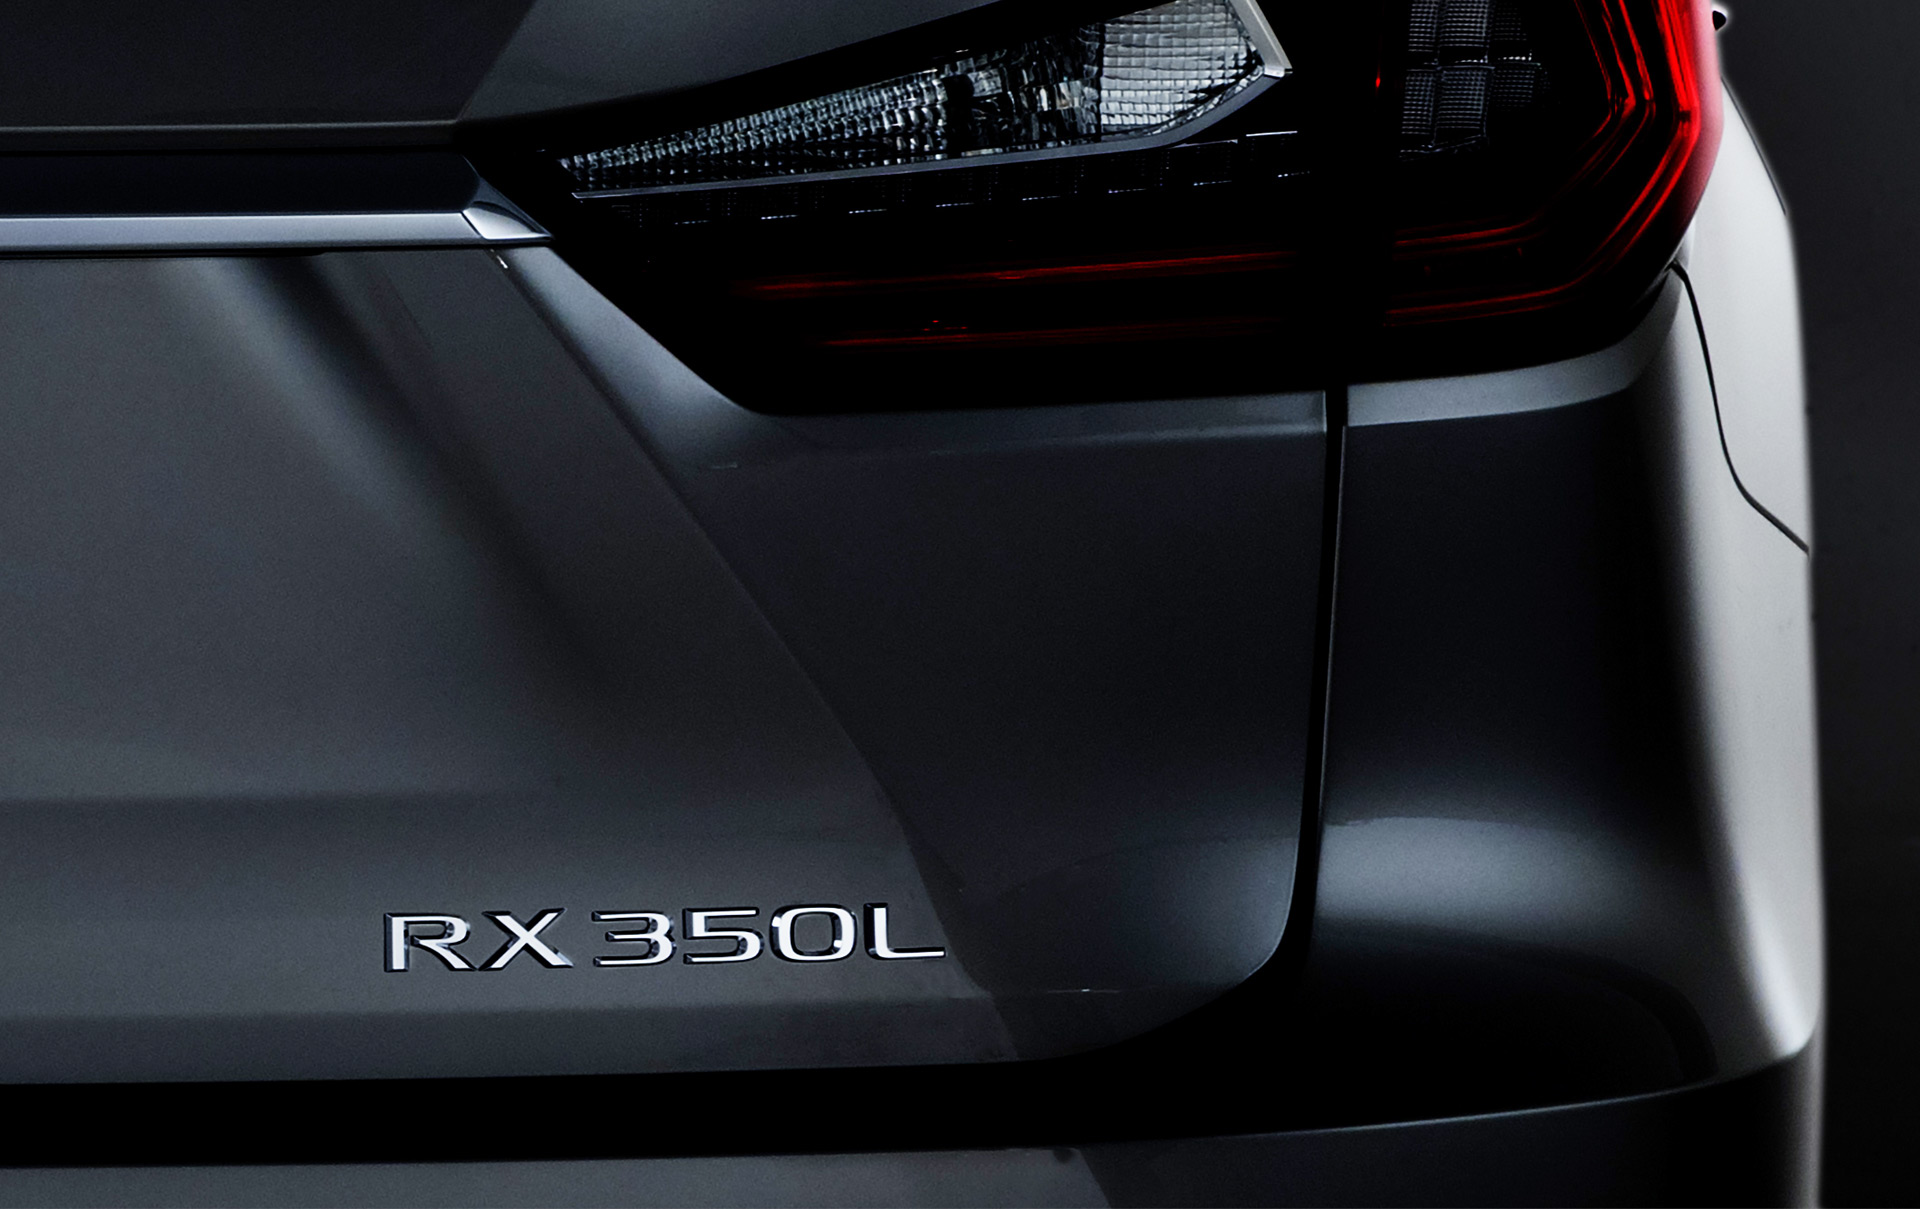 2018 Lexus RX L 3 row SUV to debut at 2017 LA Auto Show